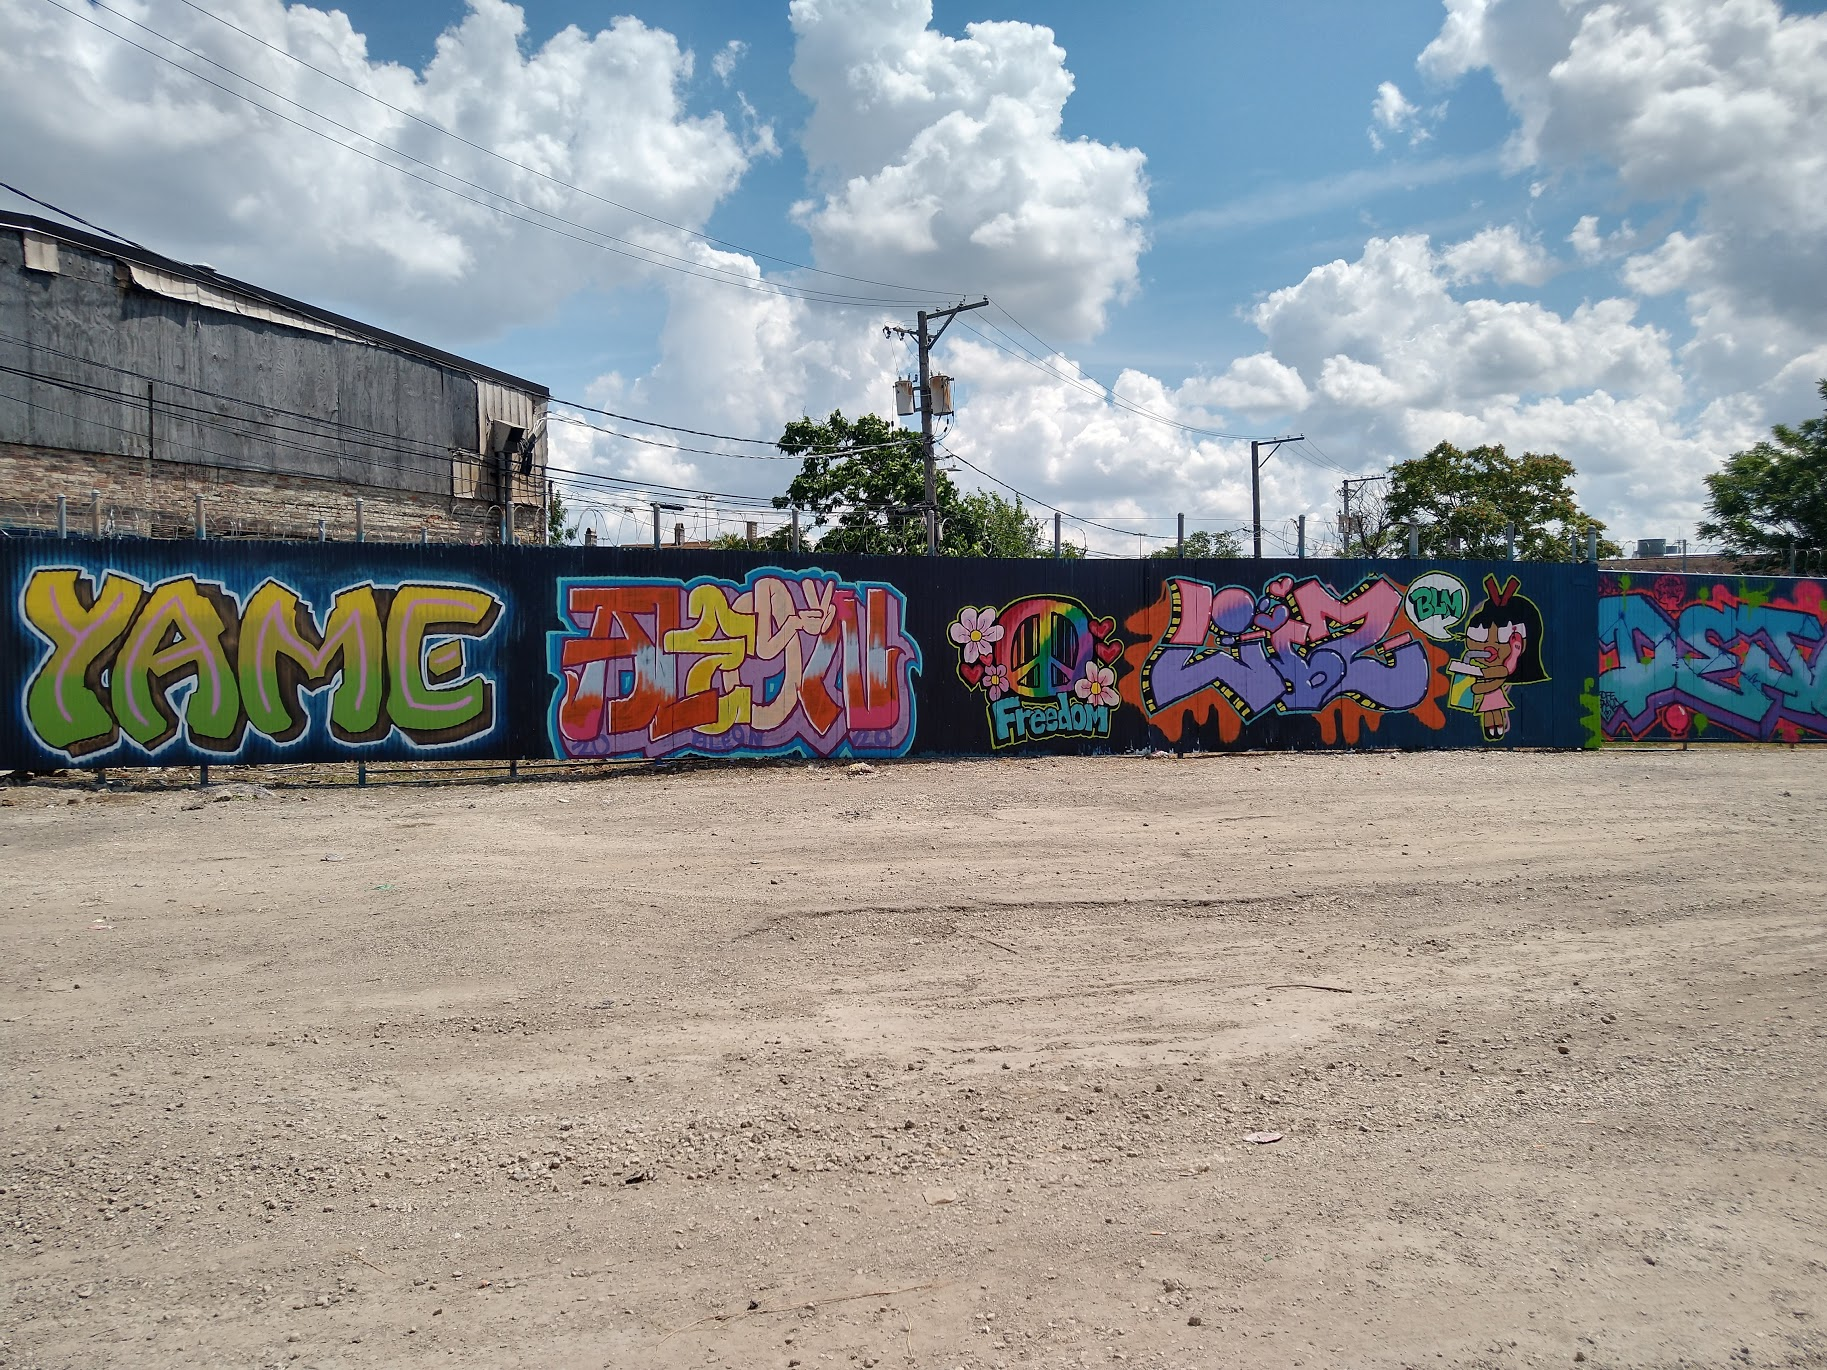 The corrugated iron wall that borders one side of the all-female graffiti artists' space that artists Bel and Phina have created, as seen from the entrance at 2725 S. Sacramento Ave. in the shadows of the Cook County Jail.